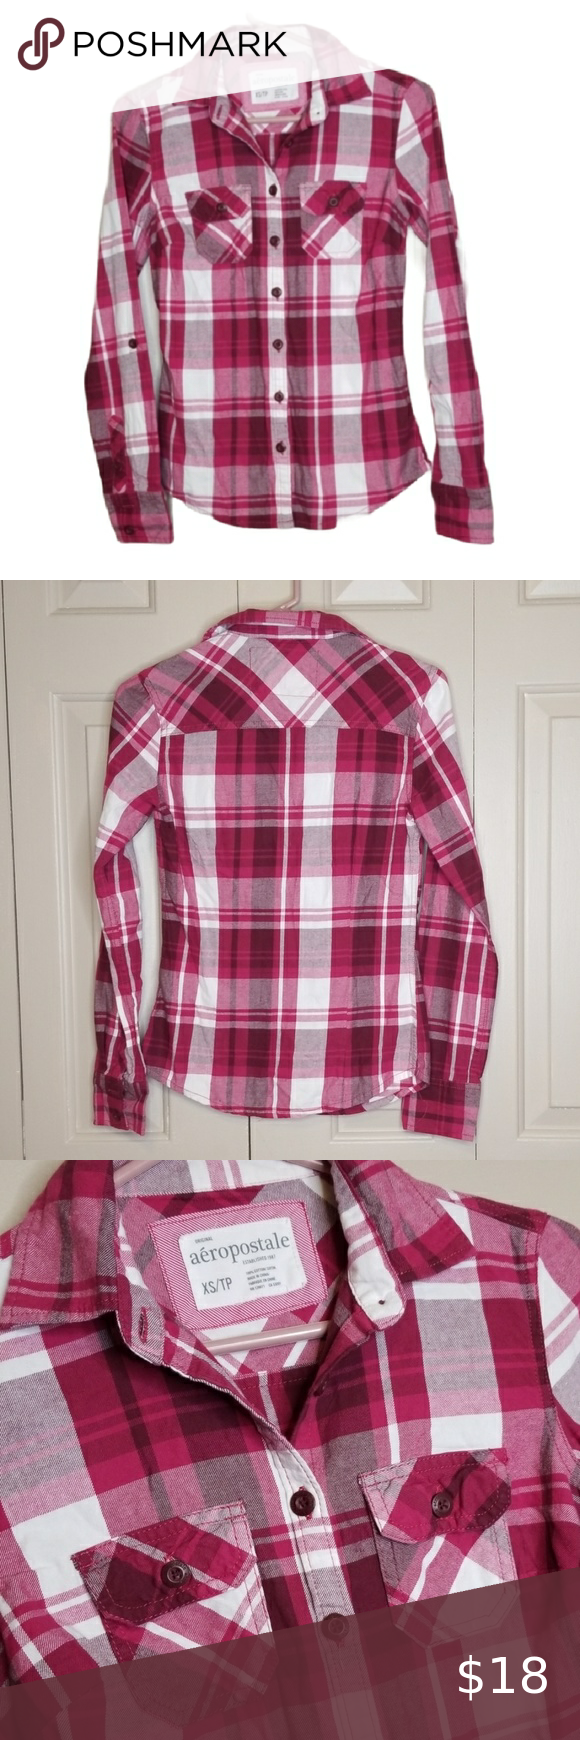 AEROPOSTALE FITTED BUTTON DOWN